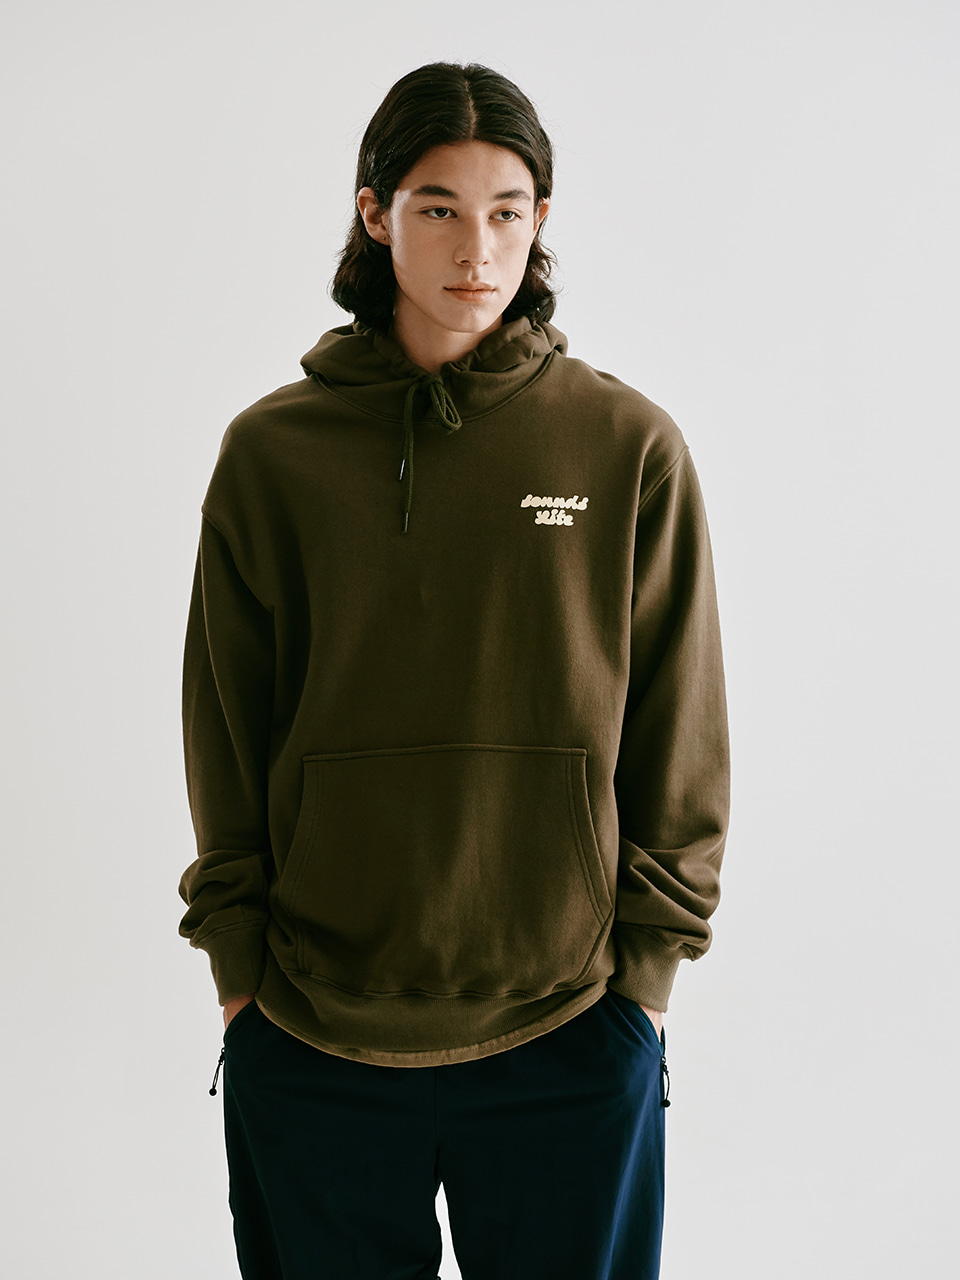 [FW20 Sounds Life] Boys & Girls Hoodie(Khaki) STEREO-SHOP